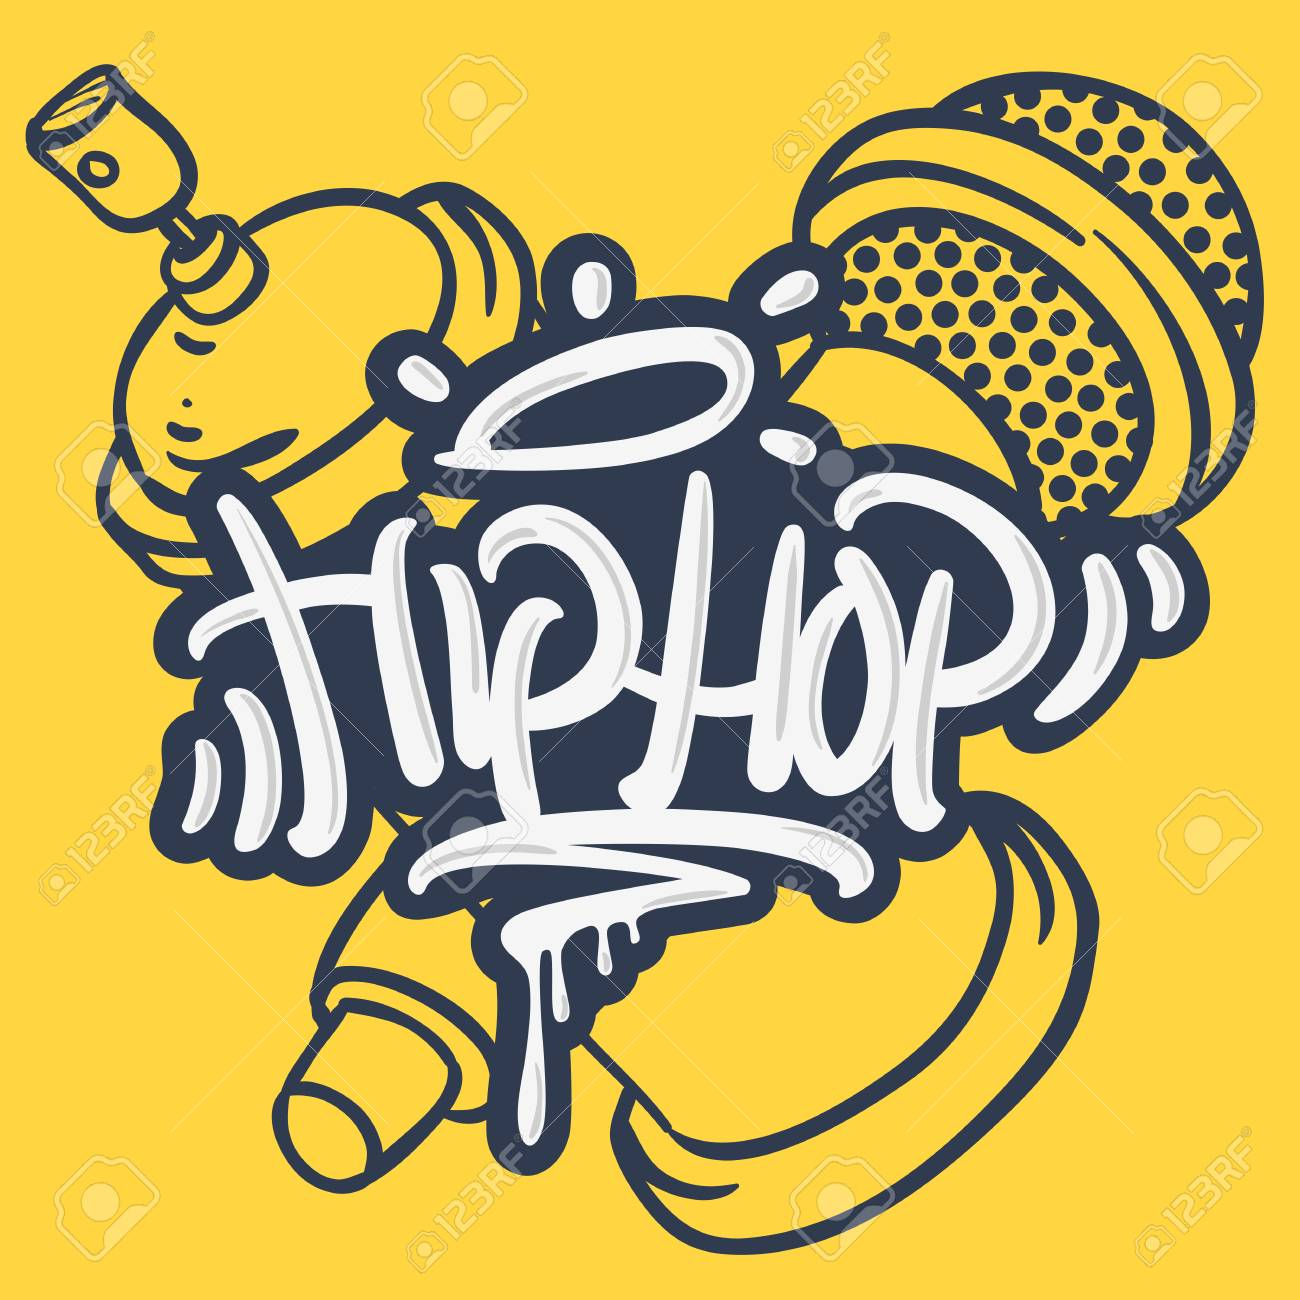 Hip Hop Lettering Custom Tag Style Characters With A Microphone And Graffiti Spray Can Baloon. Artistic Cartoon Hand Drawn Sketchy Line Art Style. - 91715857